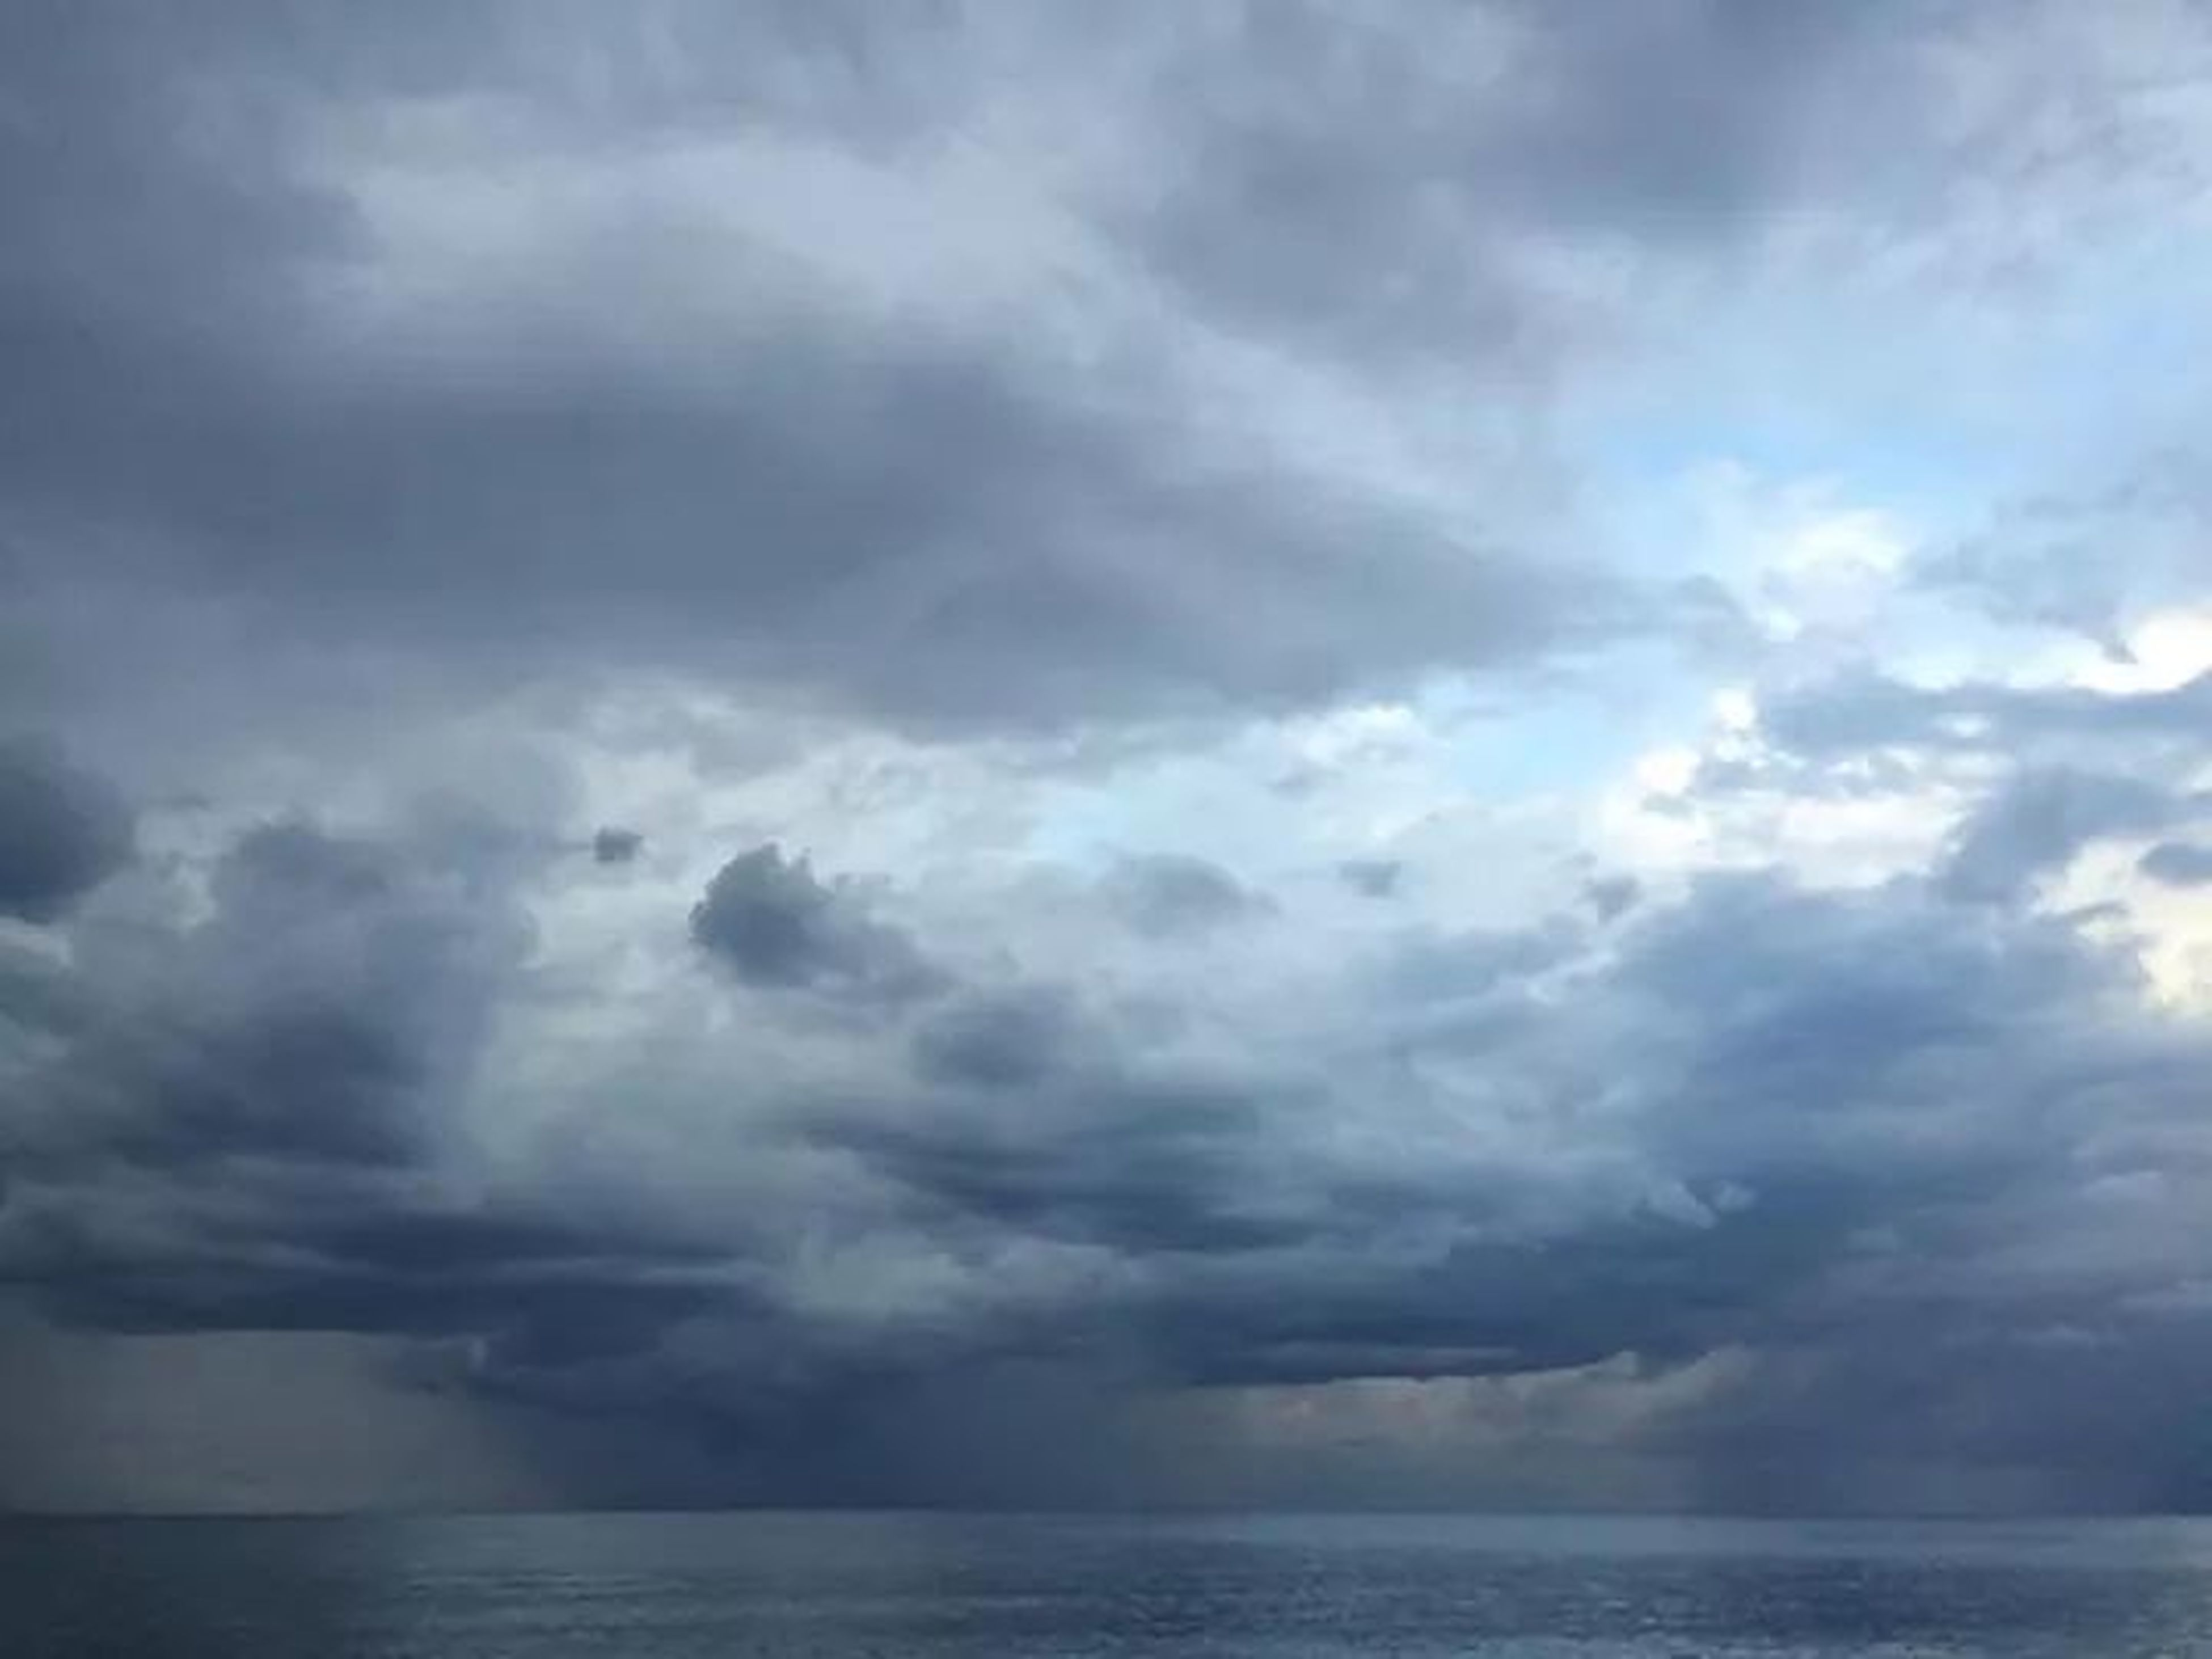 sky, cloud - sky, scenics, cloudy, tranquil scene, beauty in nature, sea, tranquility, water, waterfront, nature, horizon over water, weather, overcast, cloud, cloudscape, idyllic, storm cloud, outdoors, dramatic sky